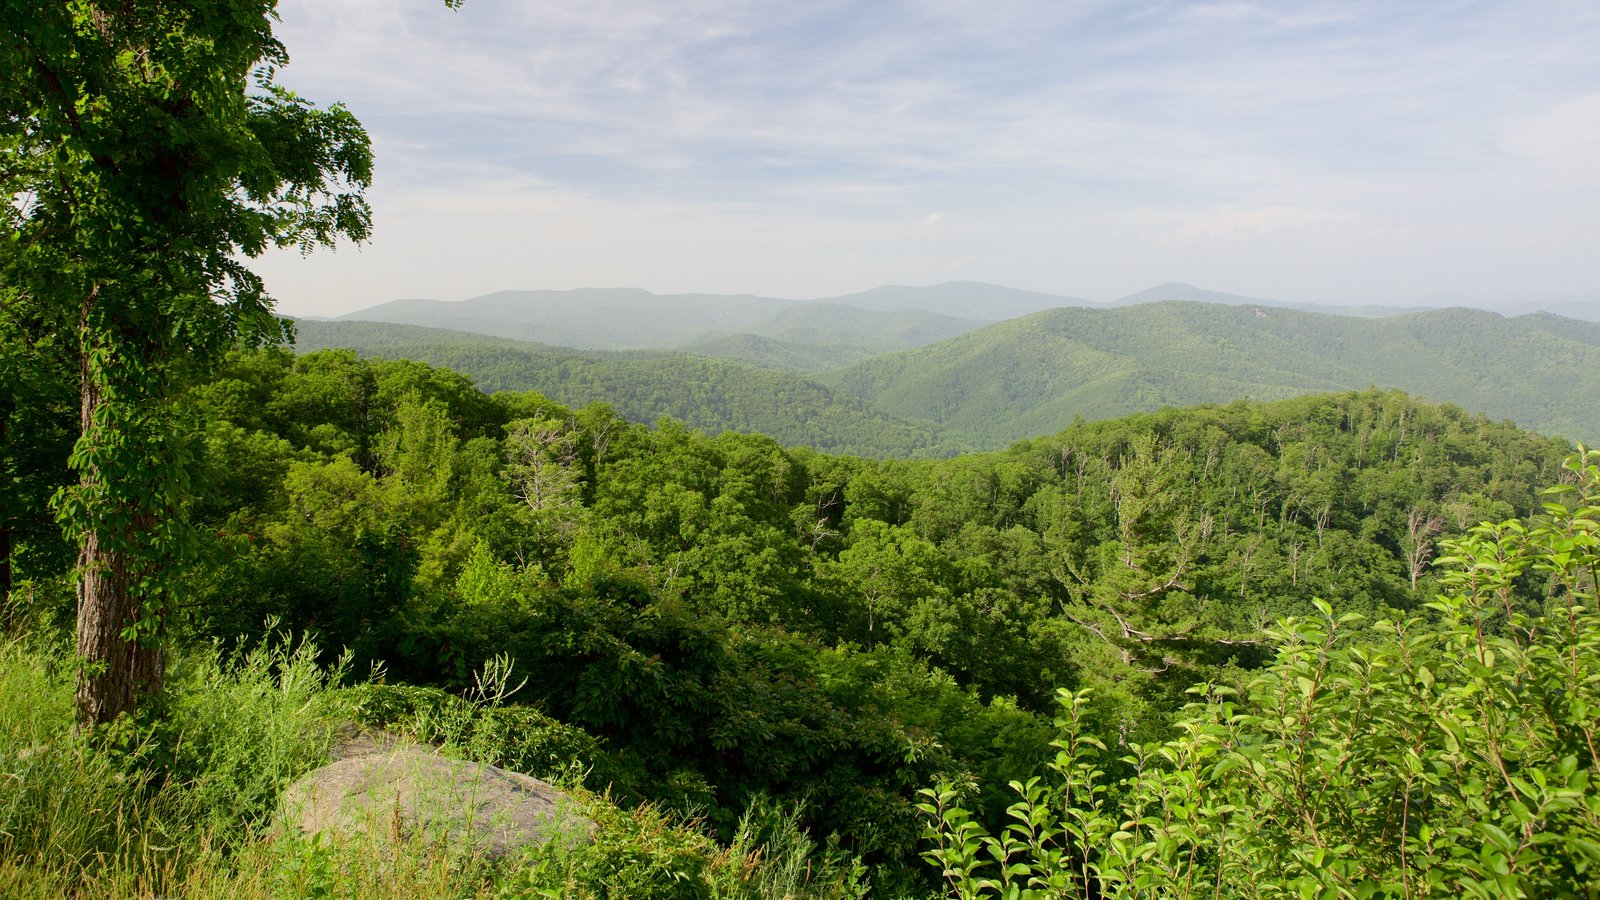 Shenandoah National Park showing mountains, landscape views and tranquil scenes